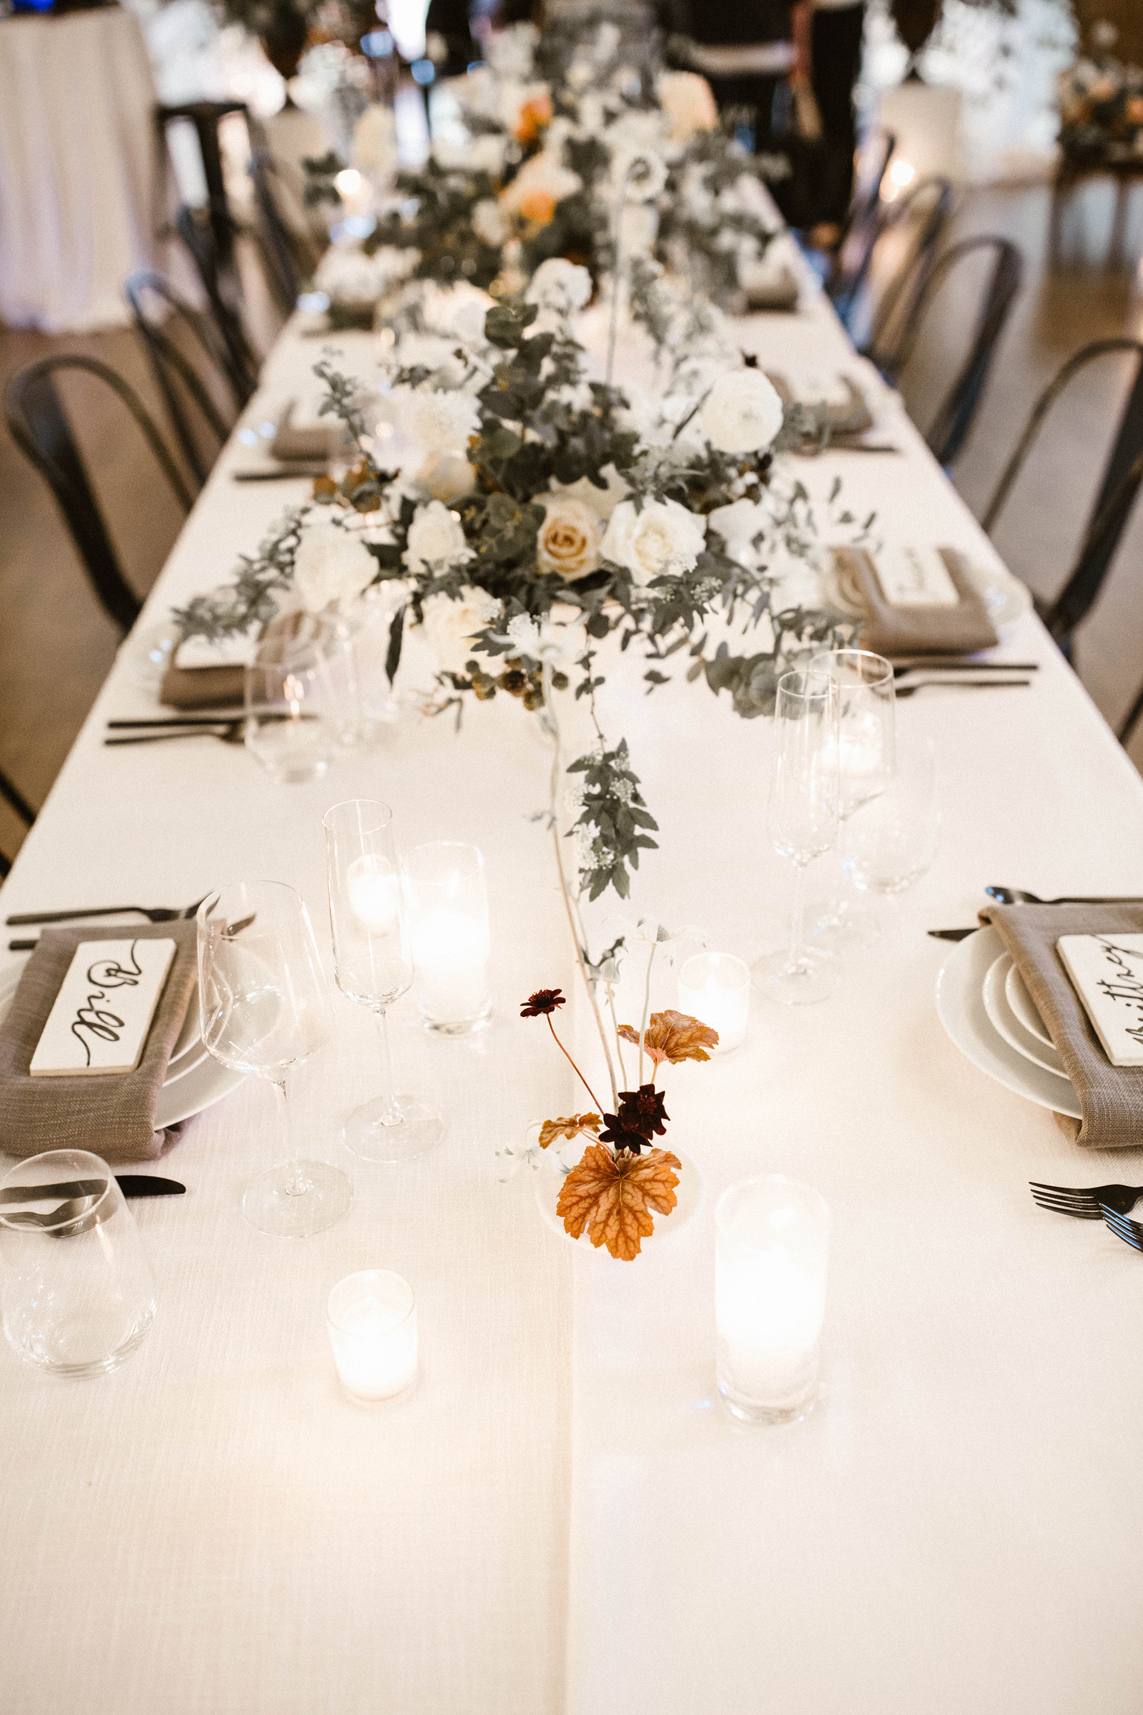 Hollywood+Anderson+House_Woodinville_2017_Weddings+In+Woodinville178.jpg